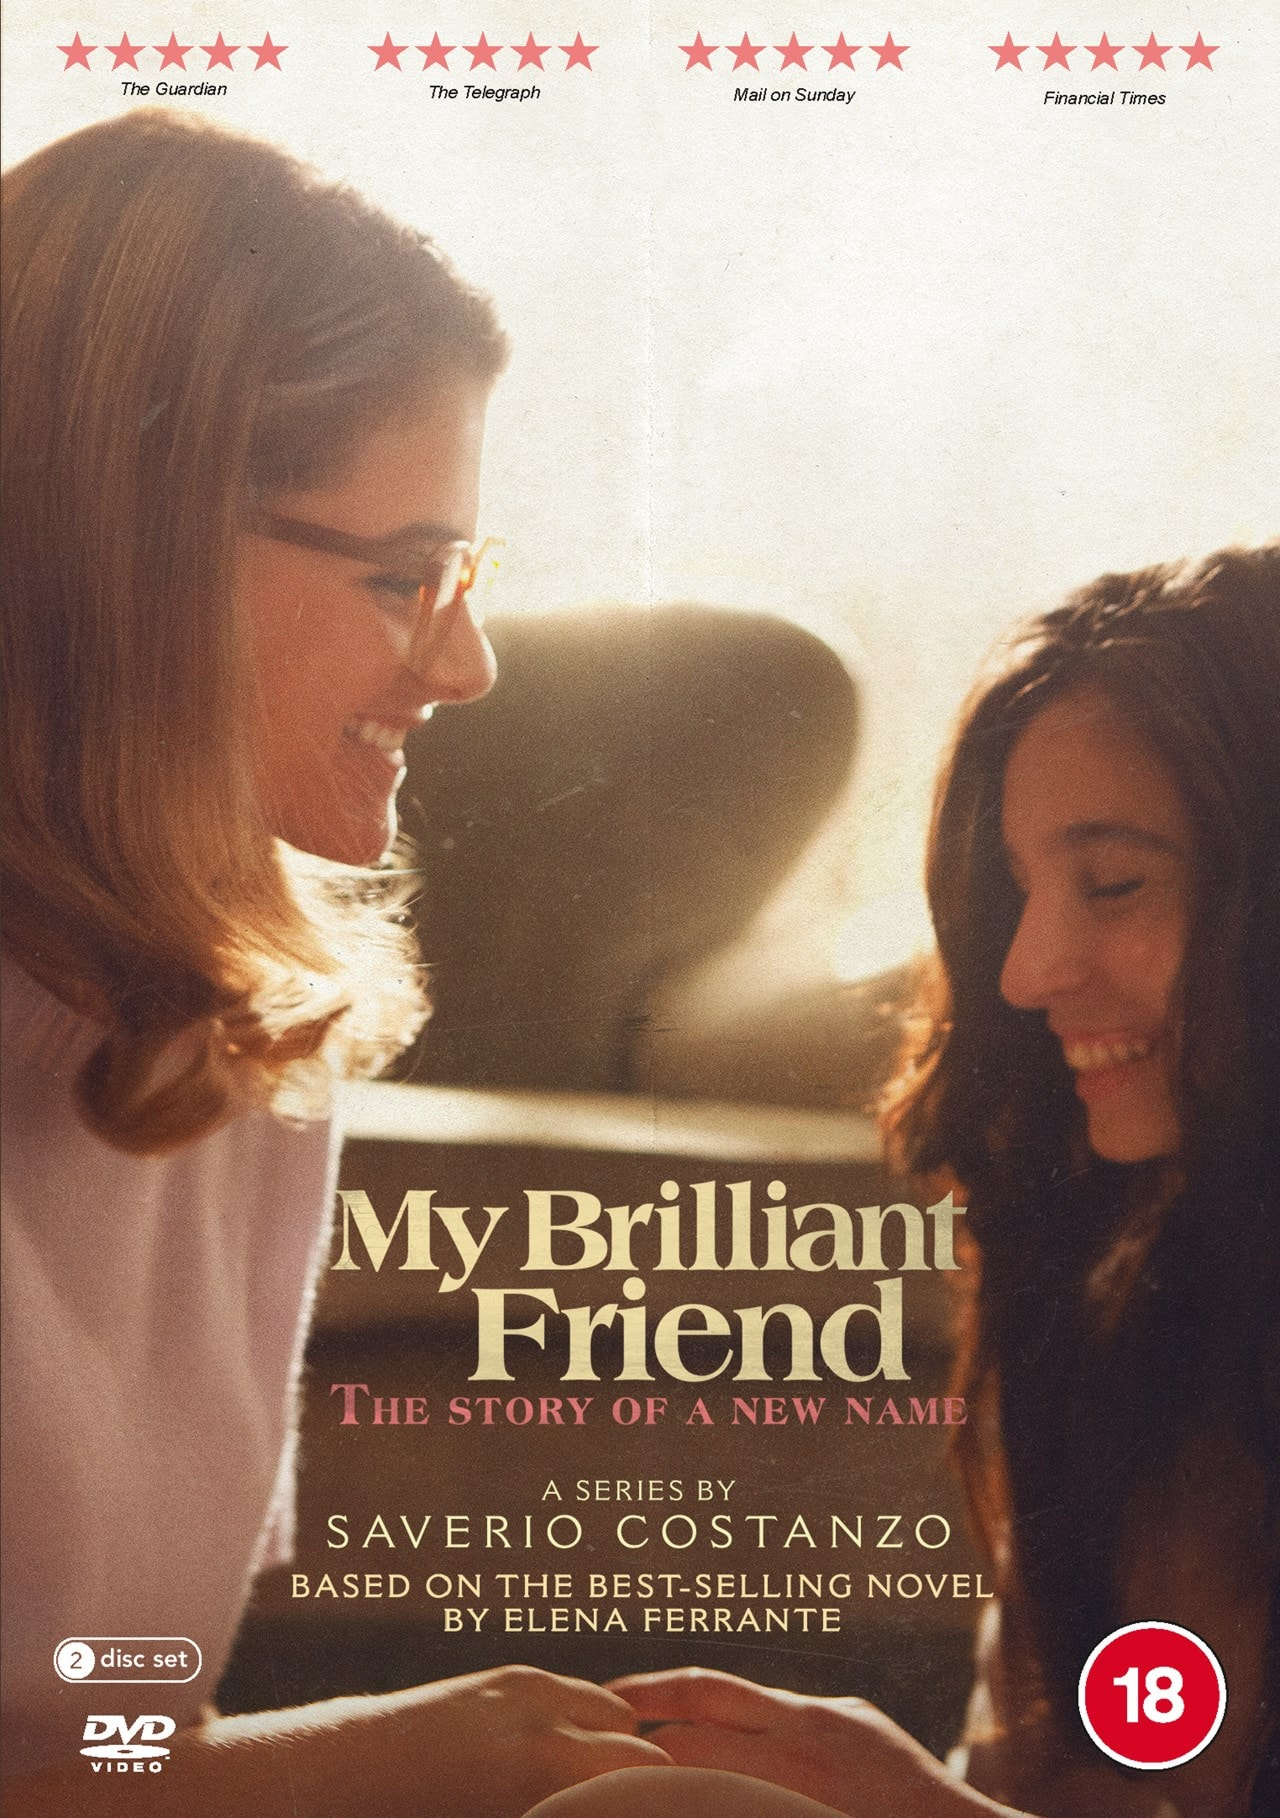 My Brilliant Friend: The Story of a New Name - 1